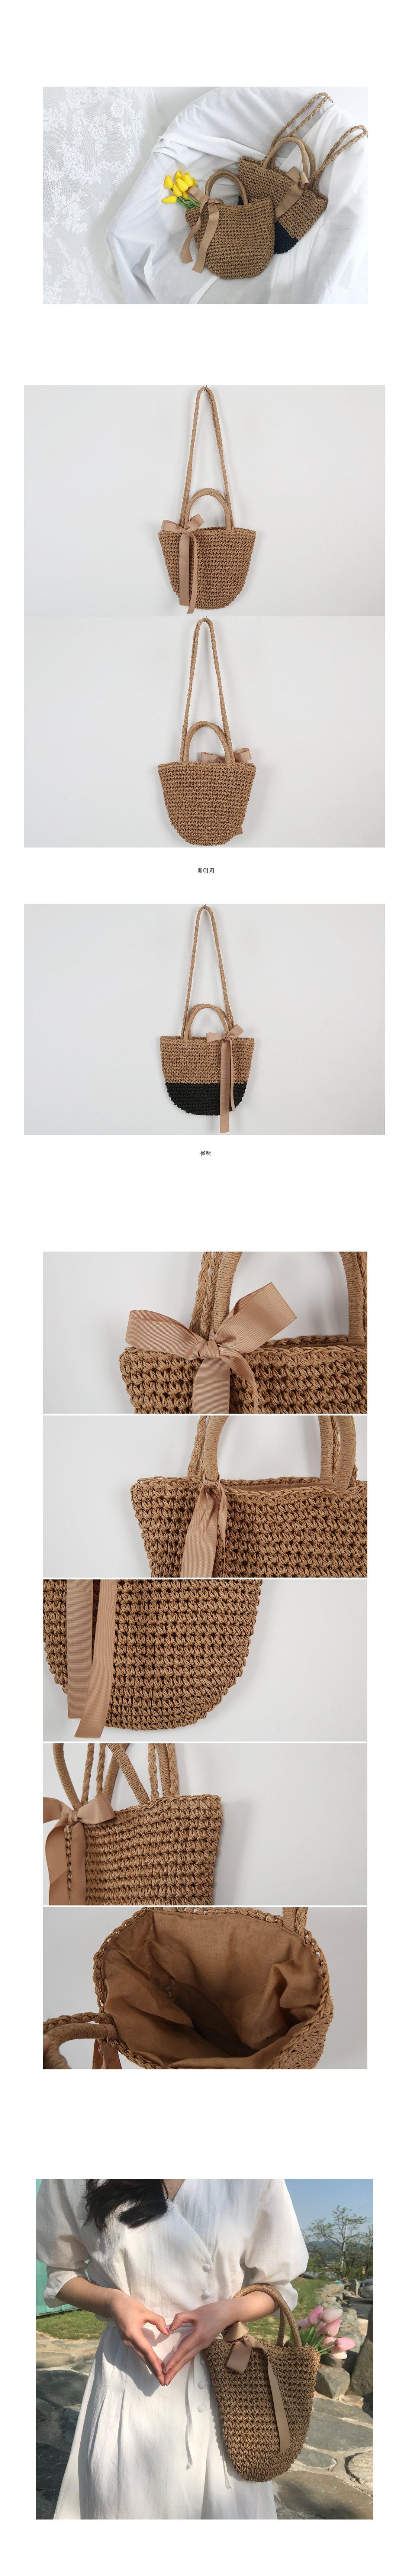 Ratan Tote & Cross Two-way Bag